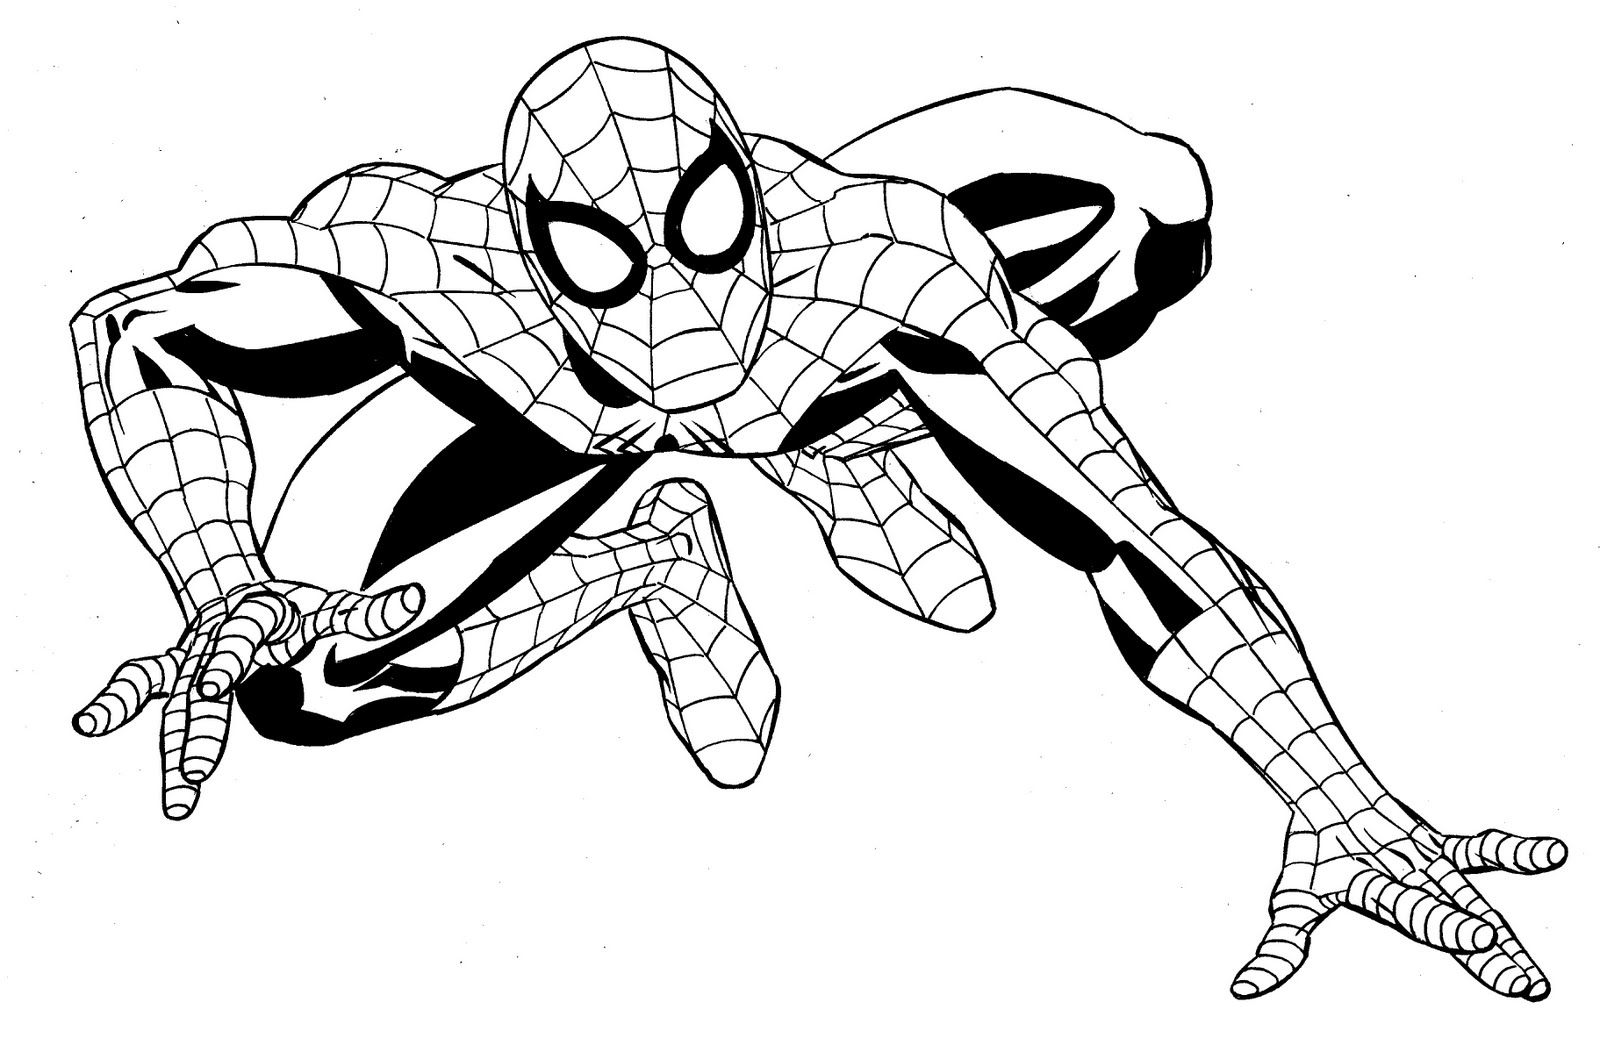 Heroes Marvel Colouring Pages Marvel Coloring Pages Prints And Colors Superhero Coloring Pages Spiderman Coloring Marvel Coloring